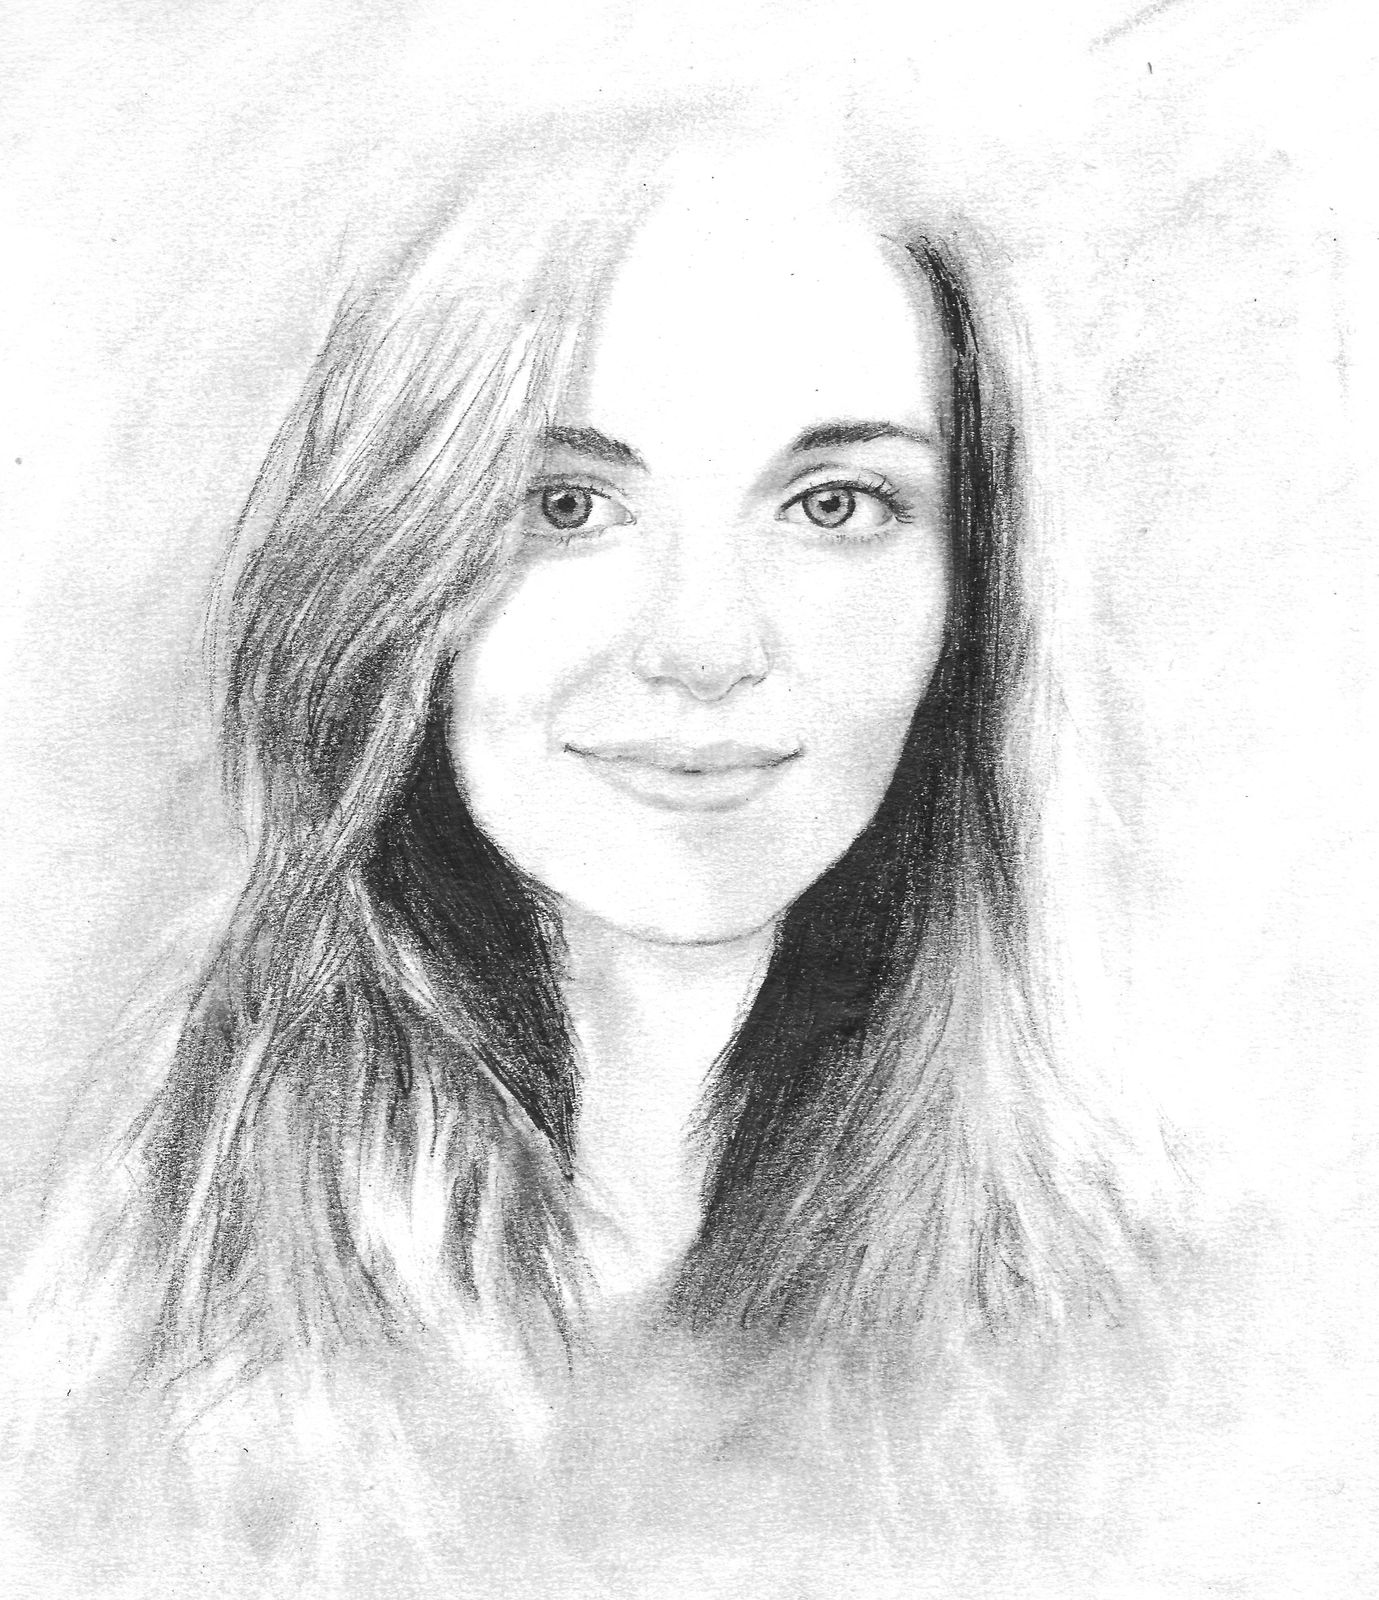 Super dessin : portraits ados - Elenacreations FI46